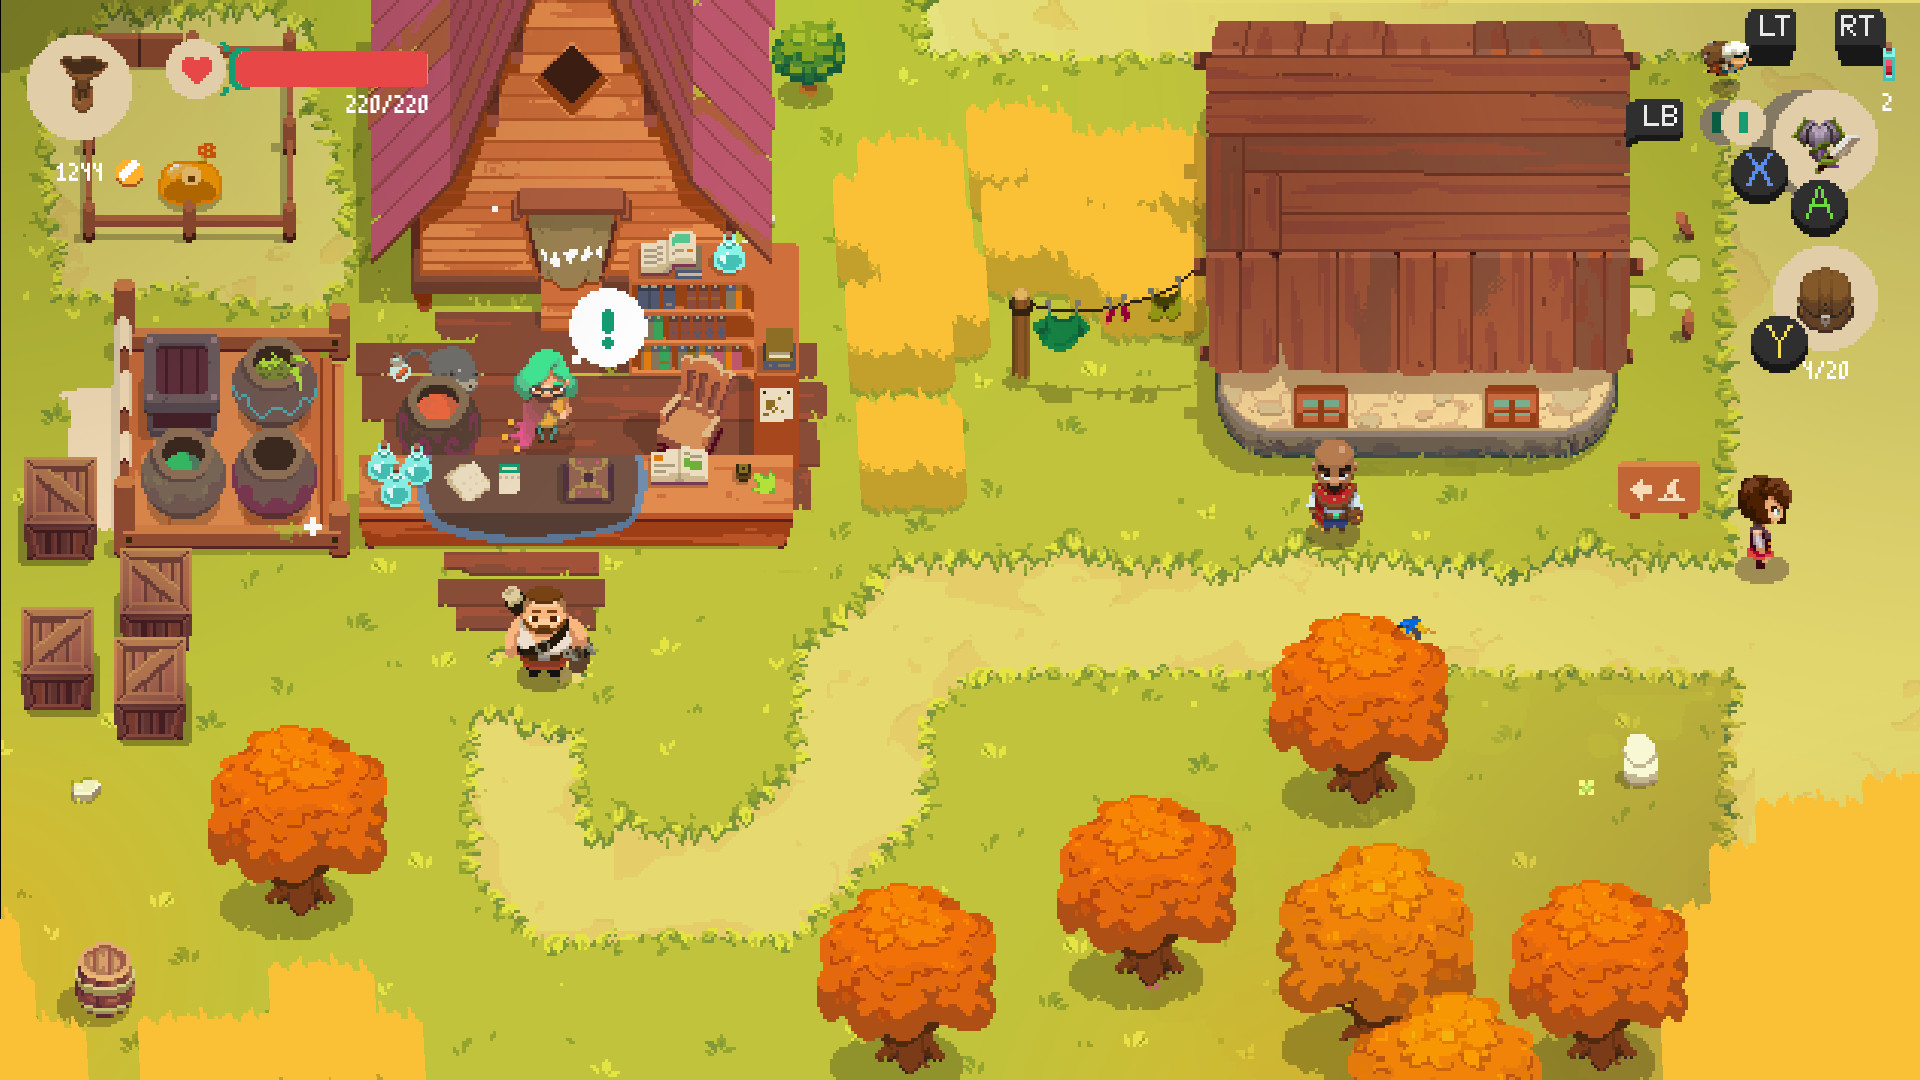 Moonlighter on Steam